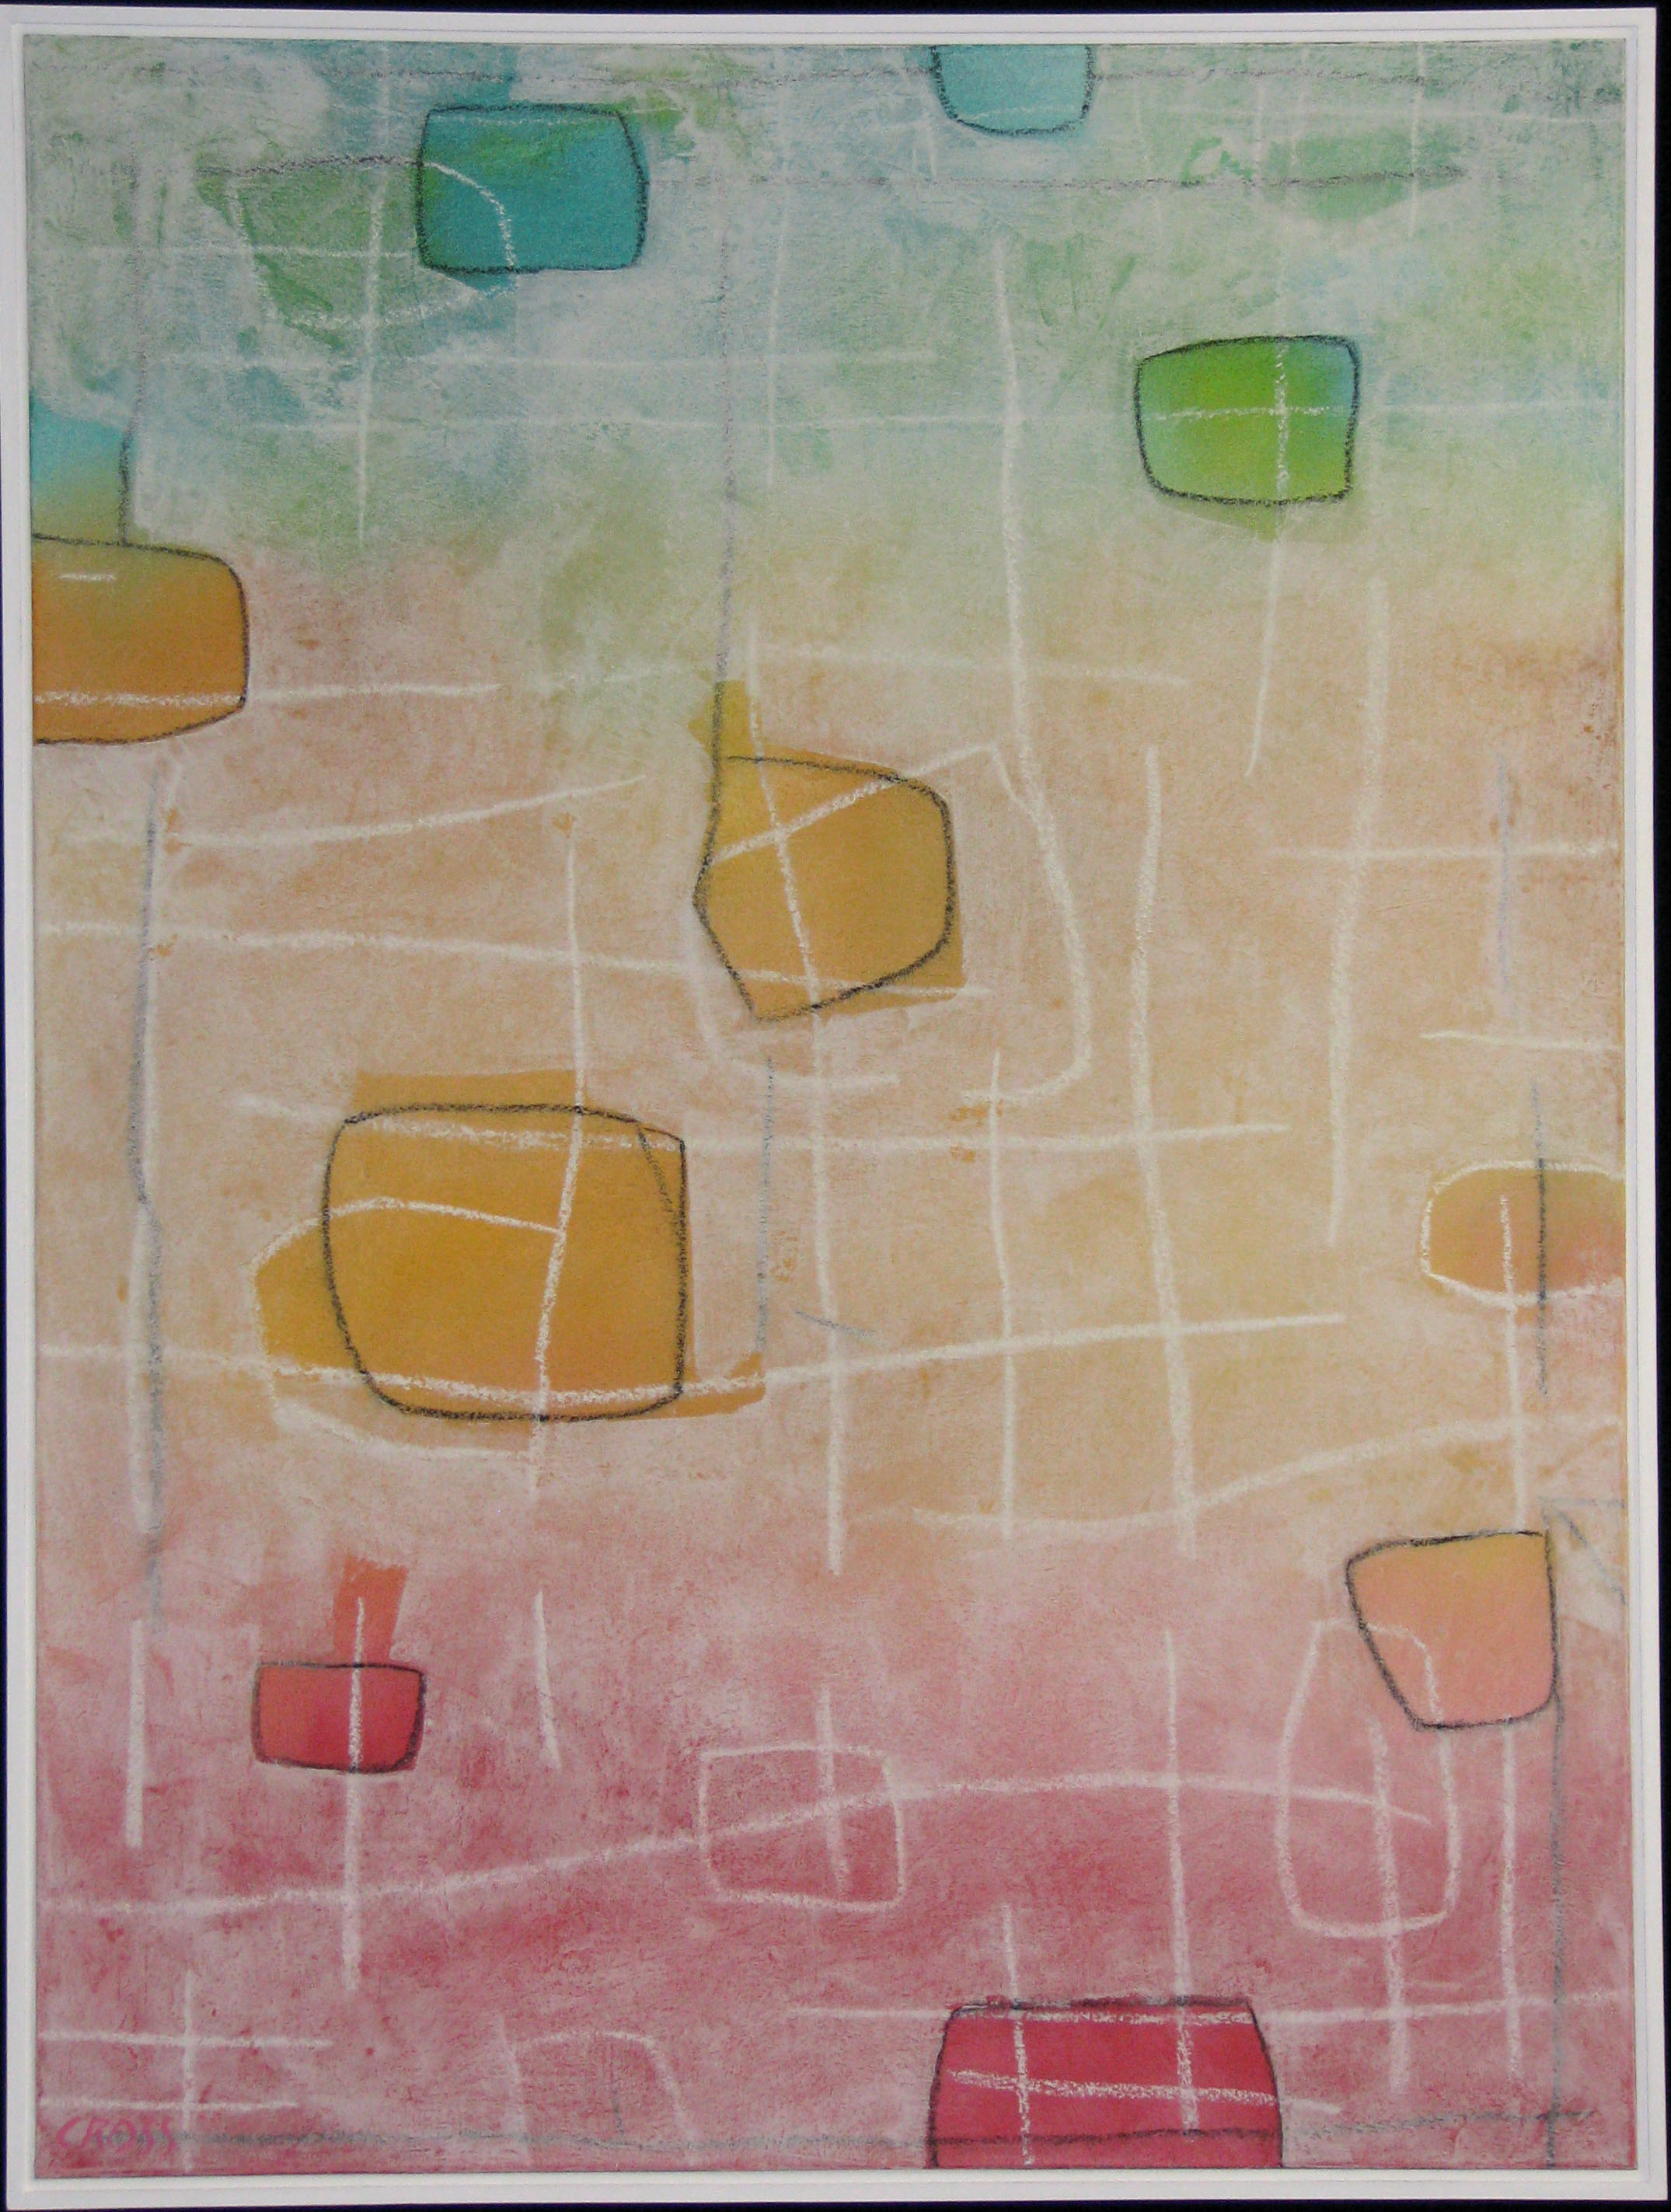 PAPER LANTERN IX, acrylic and mixed media on canvas, 40 x 30 in